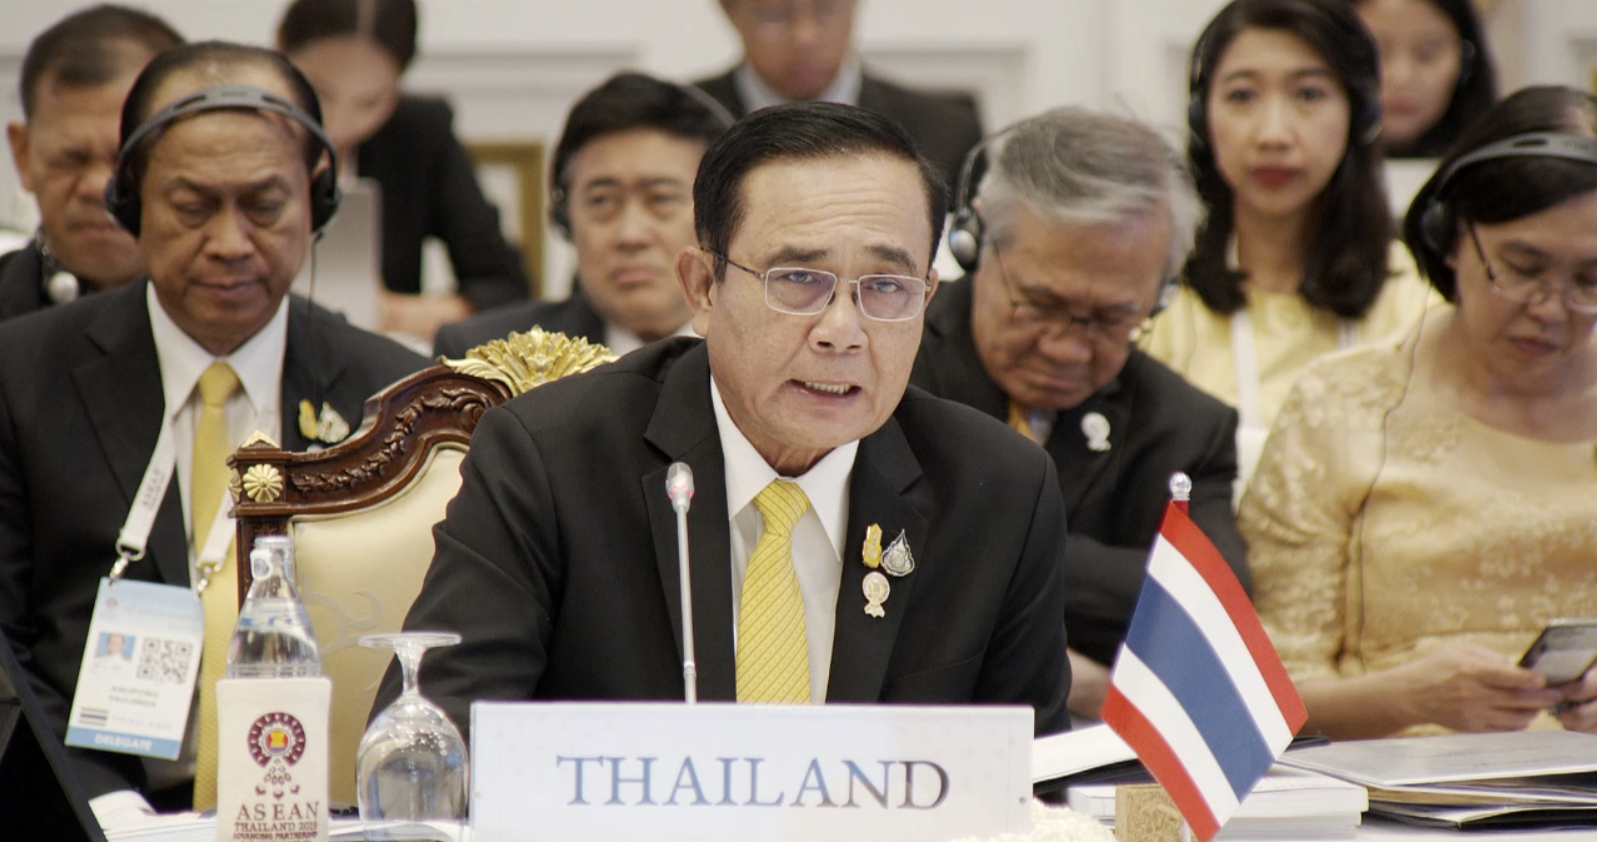 """Development of Connectivity to further Support Development in other Aspects."" – H.E Prayut Chan-o-cha, Prime Minister of Thailand"